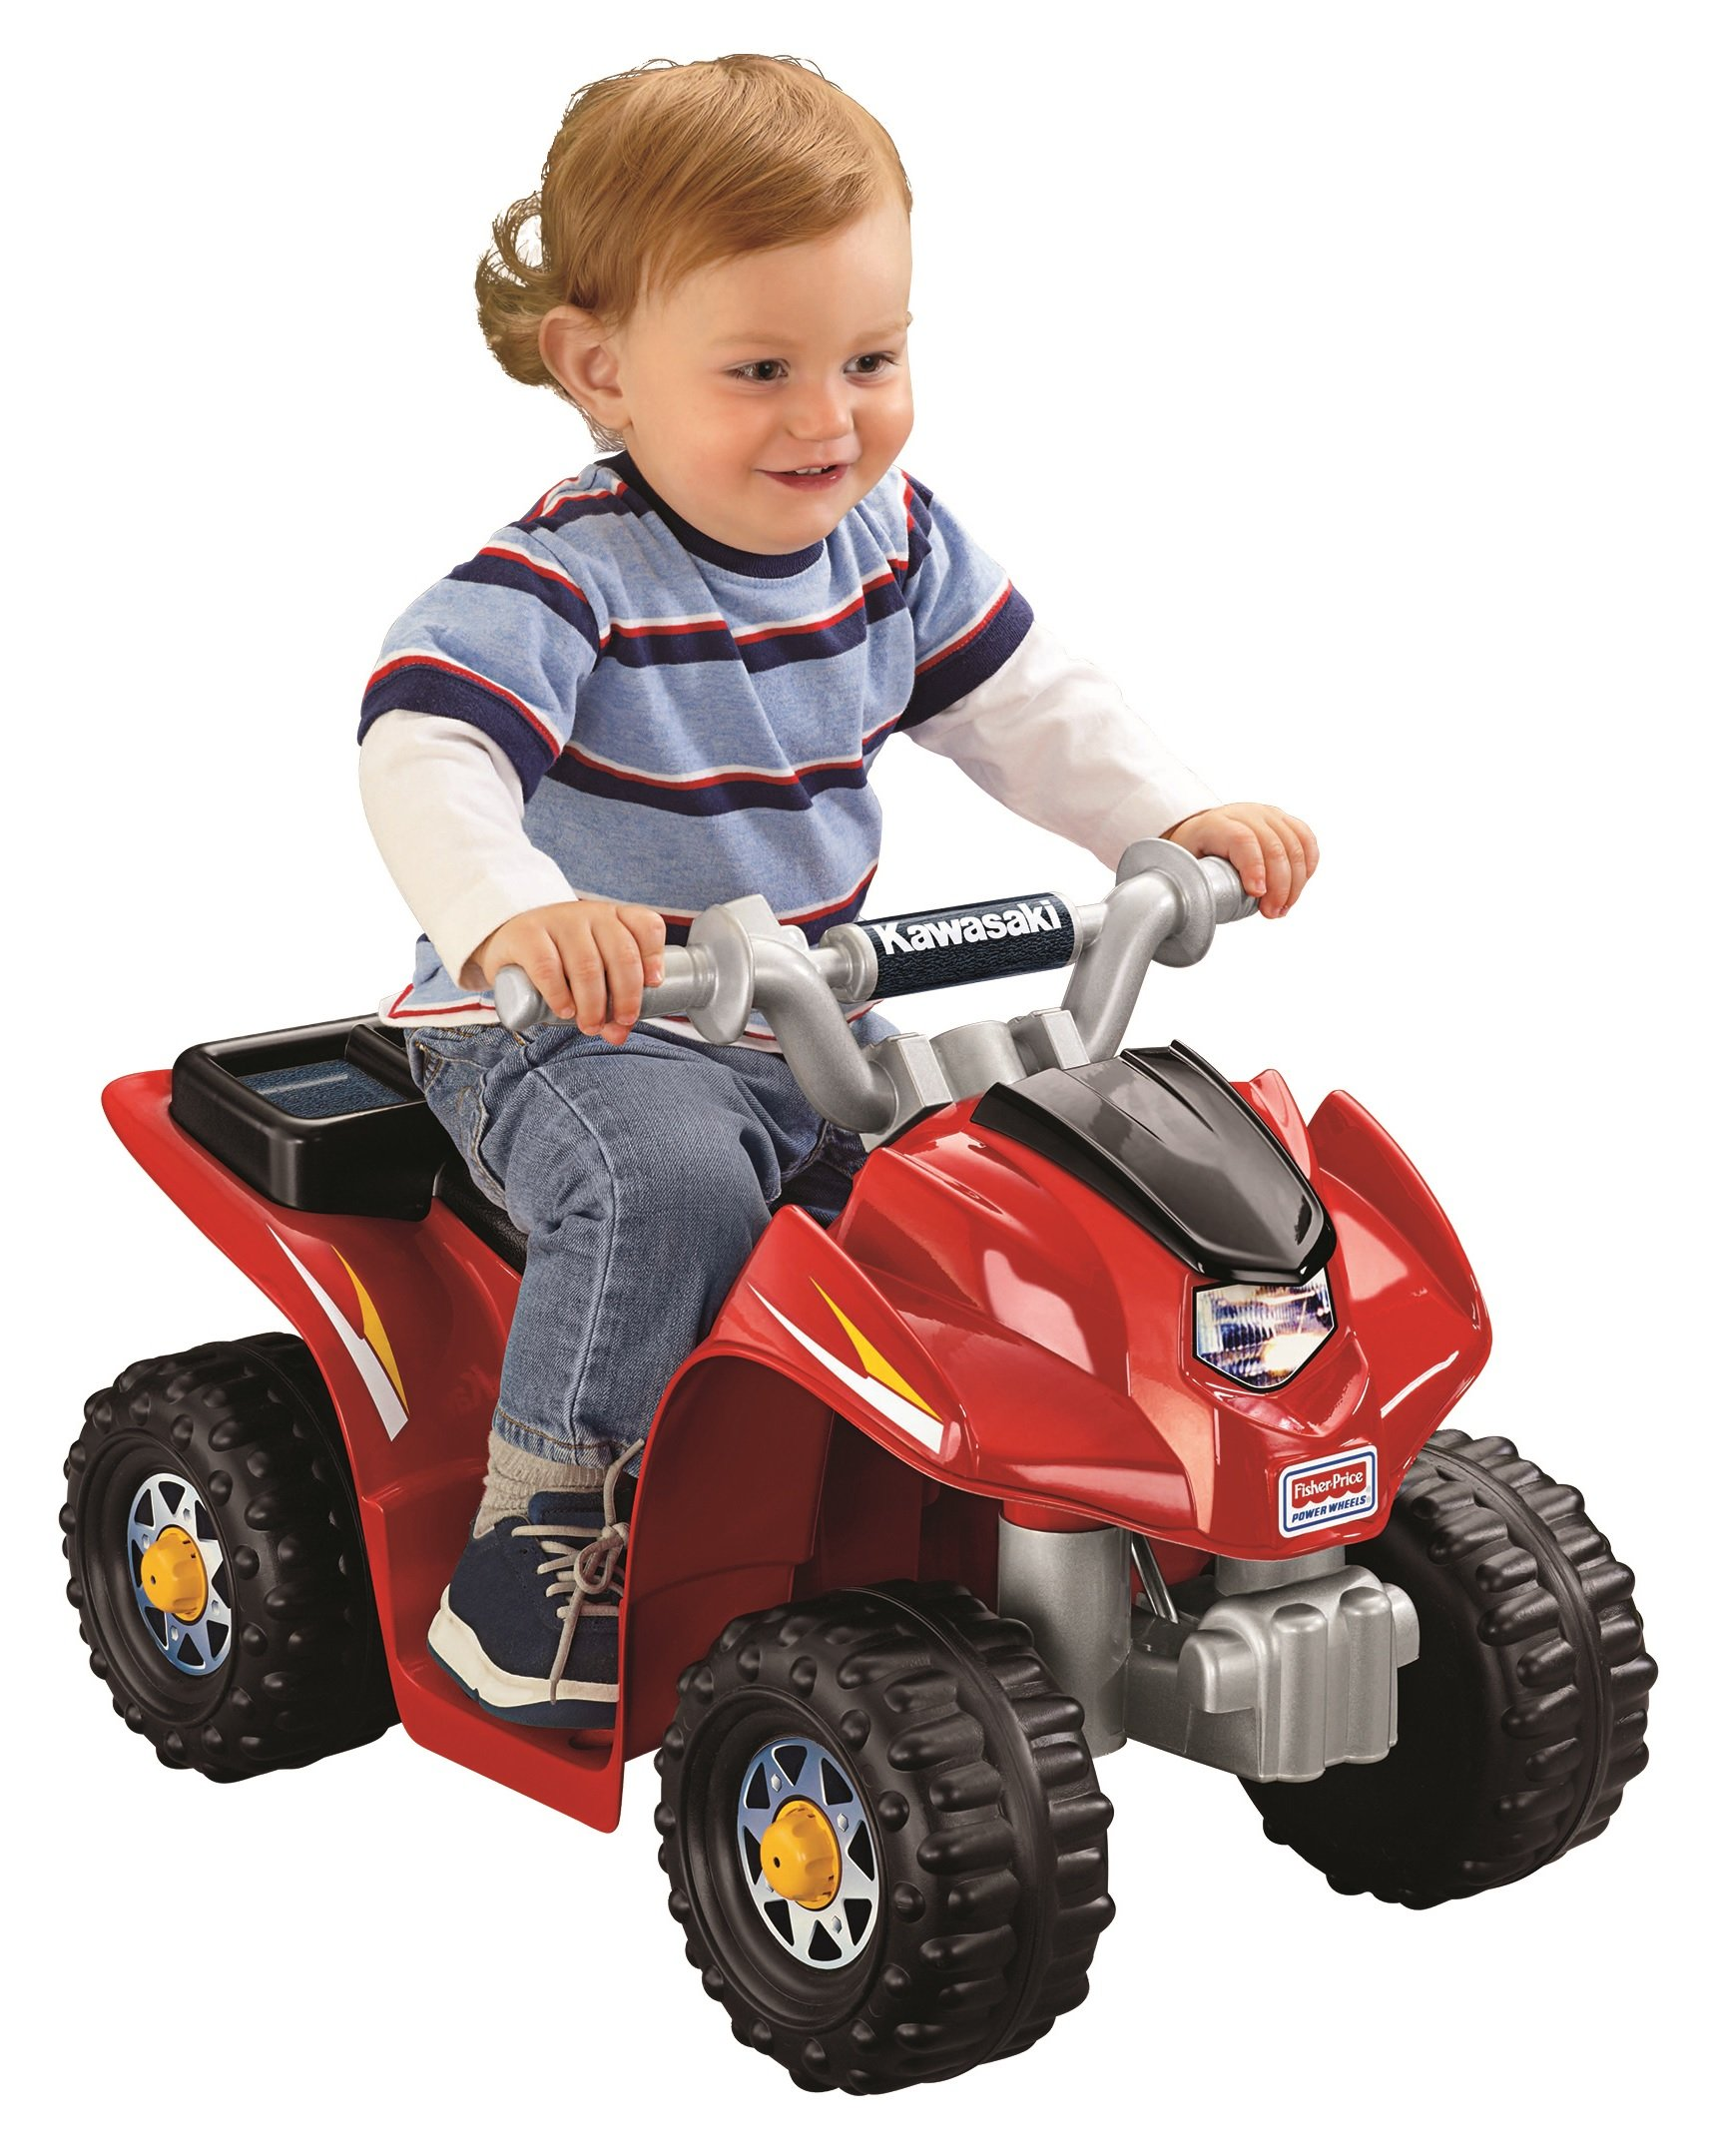 Power Wheels Kawasaki Lil' Quad by Fisher-Price